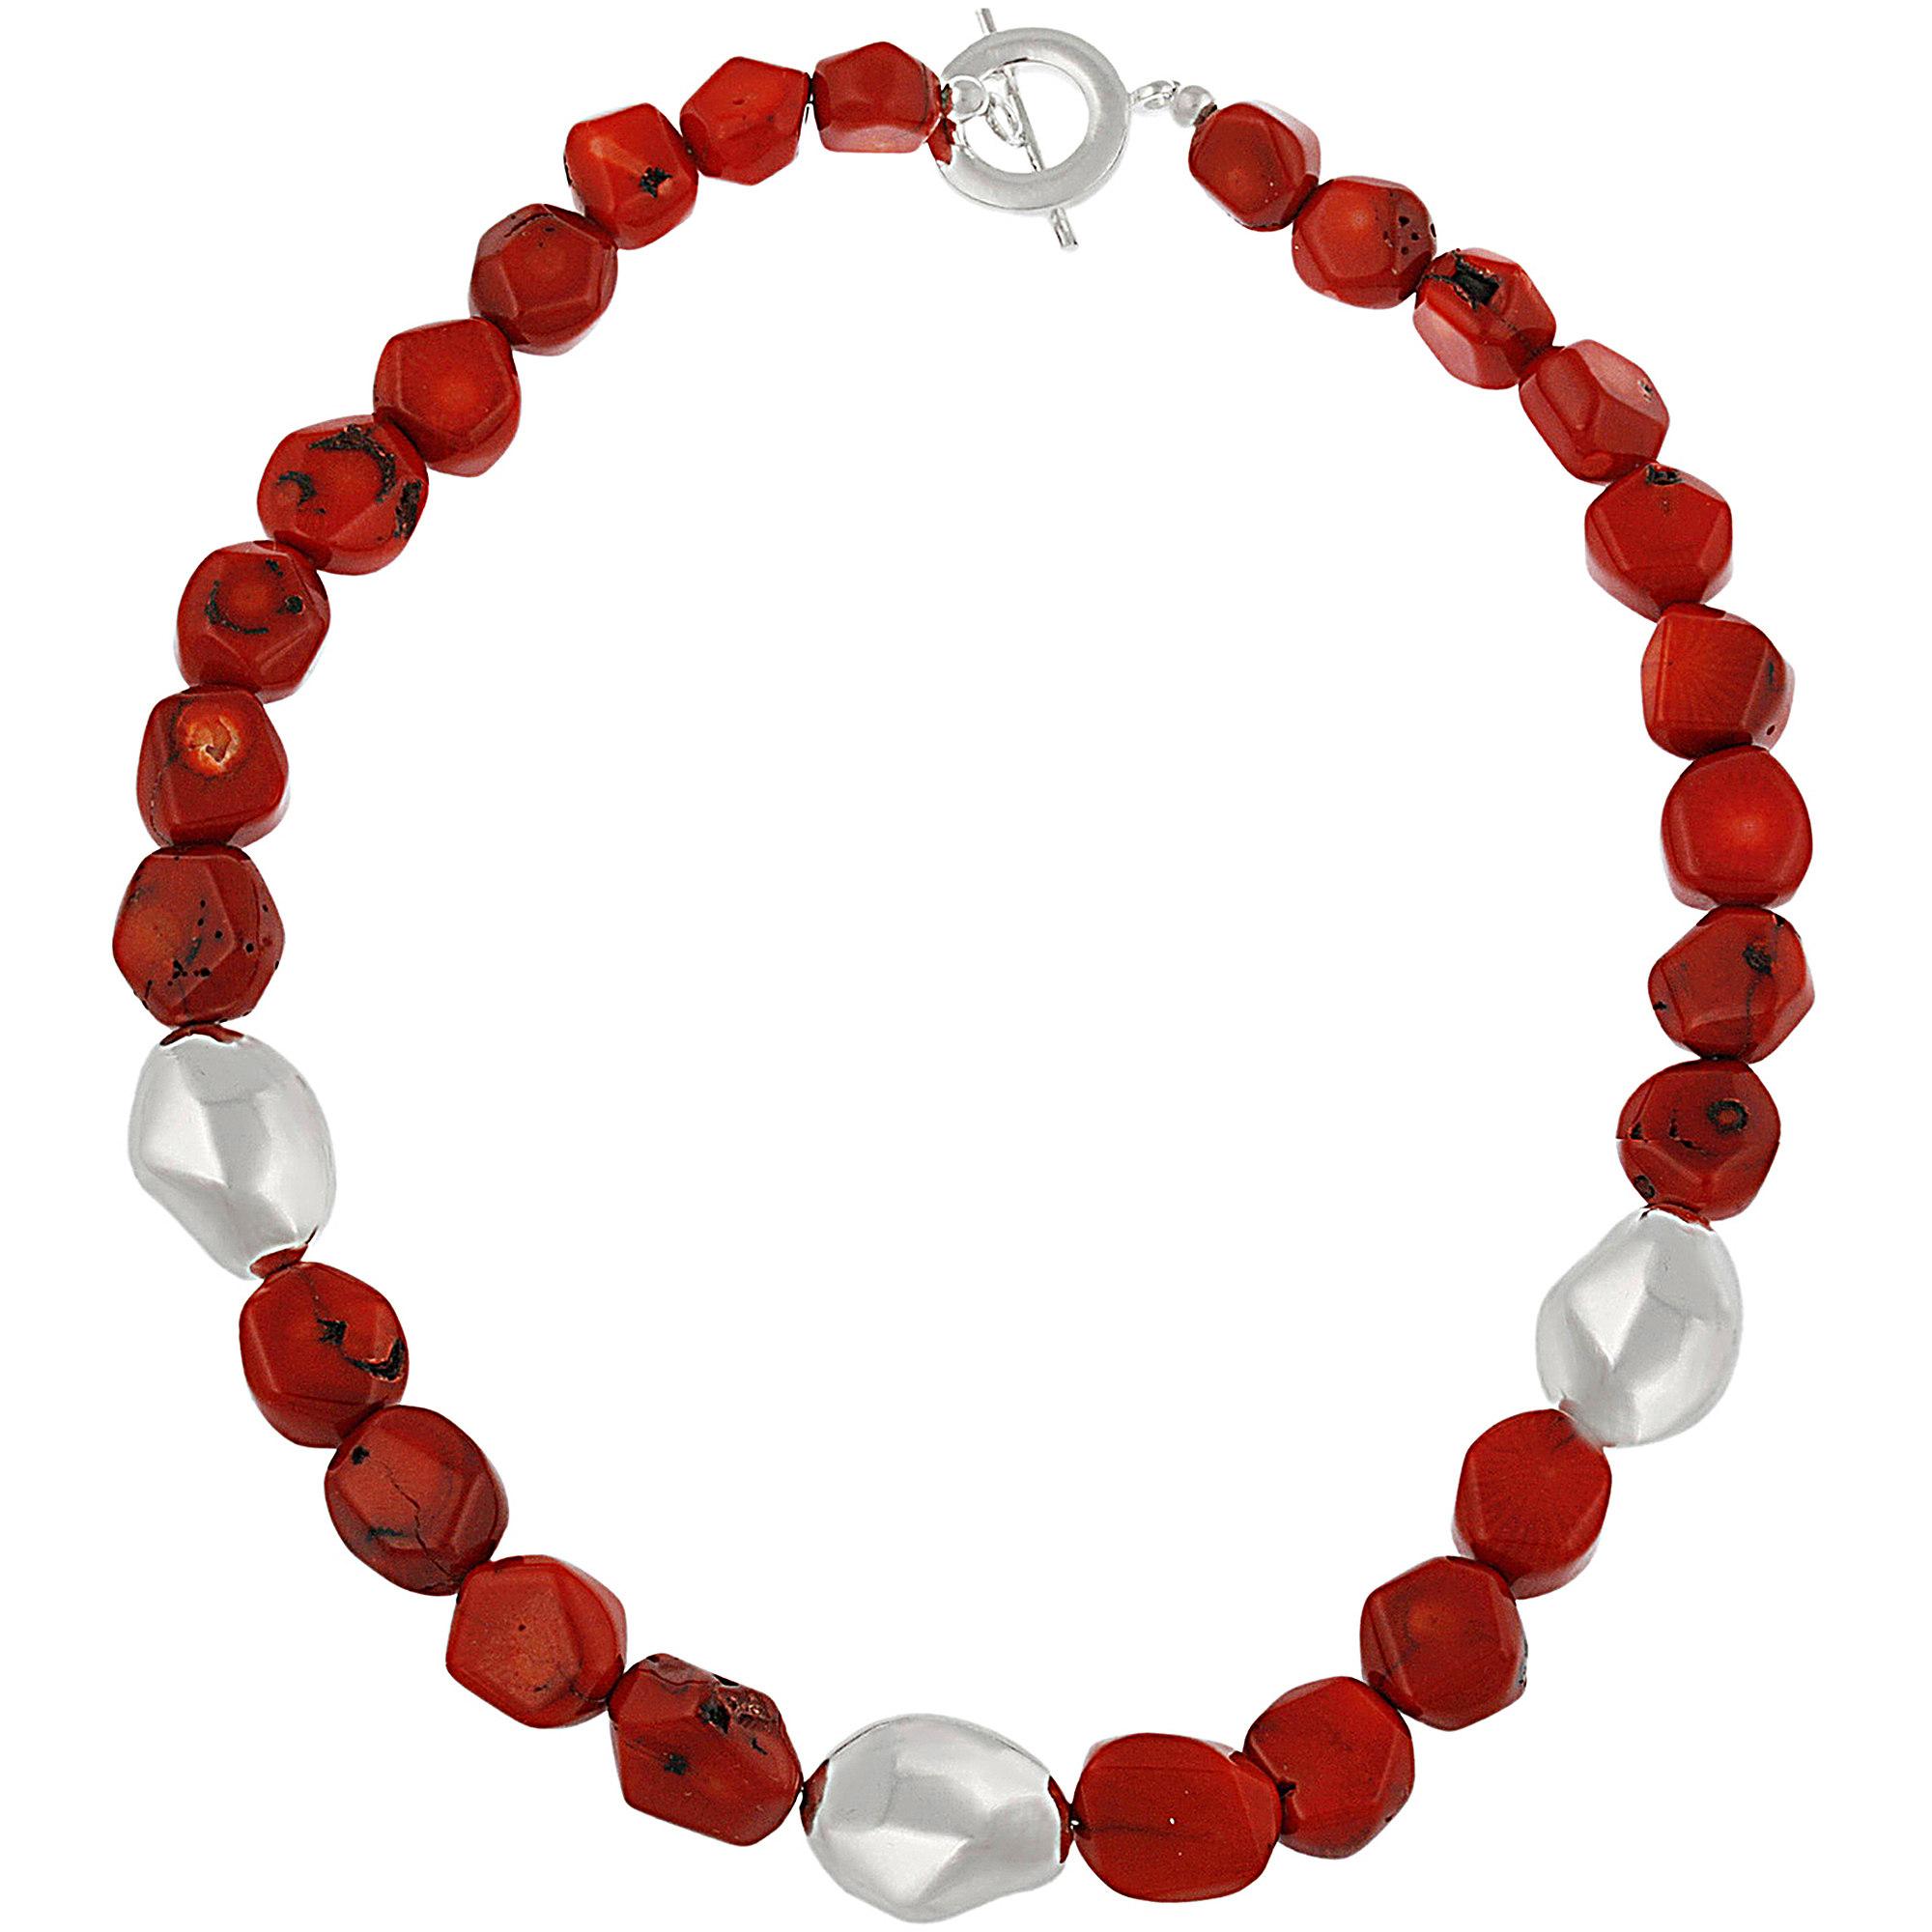 Coral and Silver Nuggets Sterling Silver Station Necklace, 16""